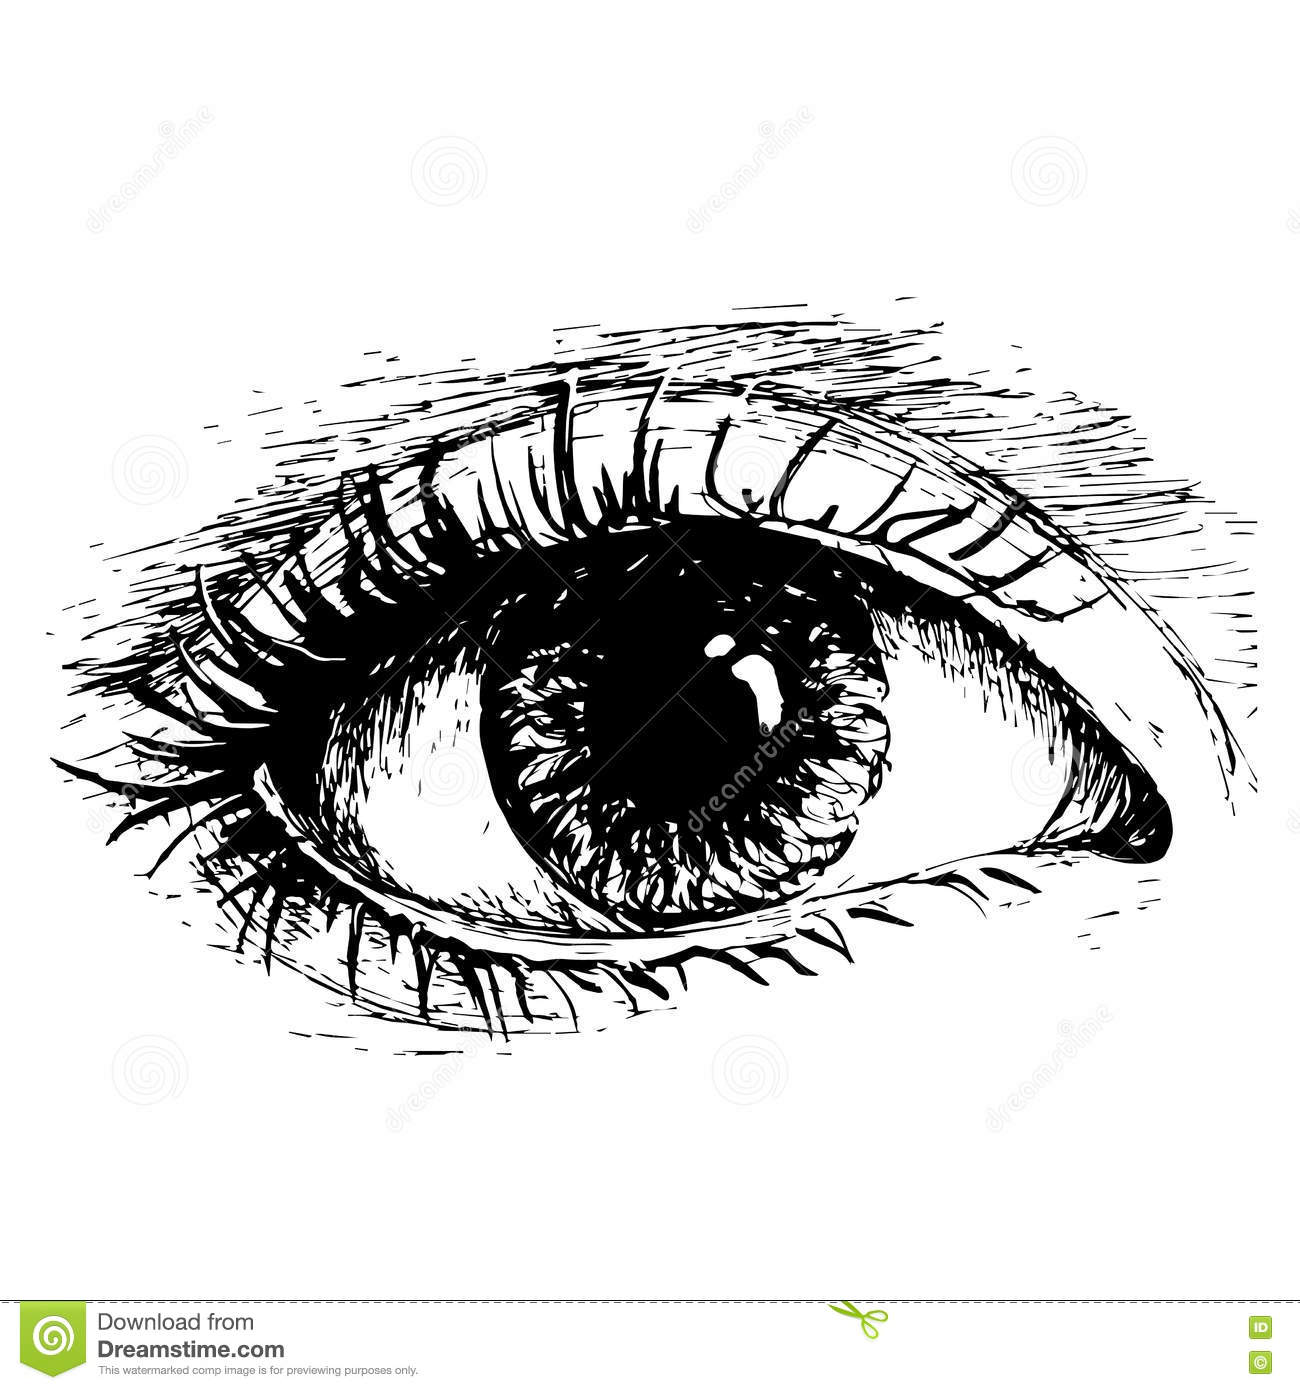 Black and white eye drawing-3475